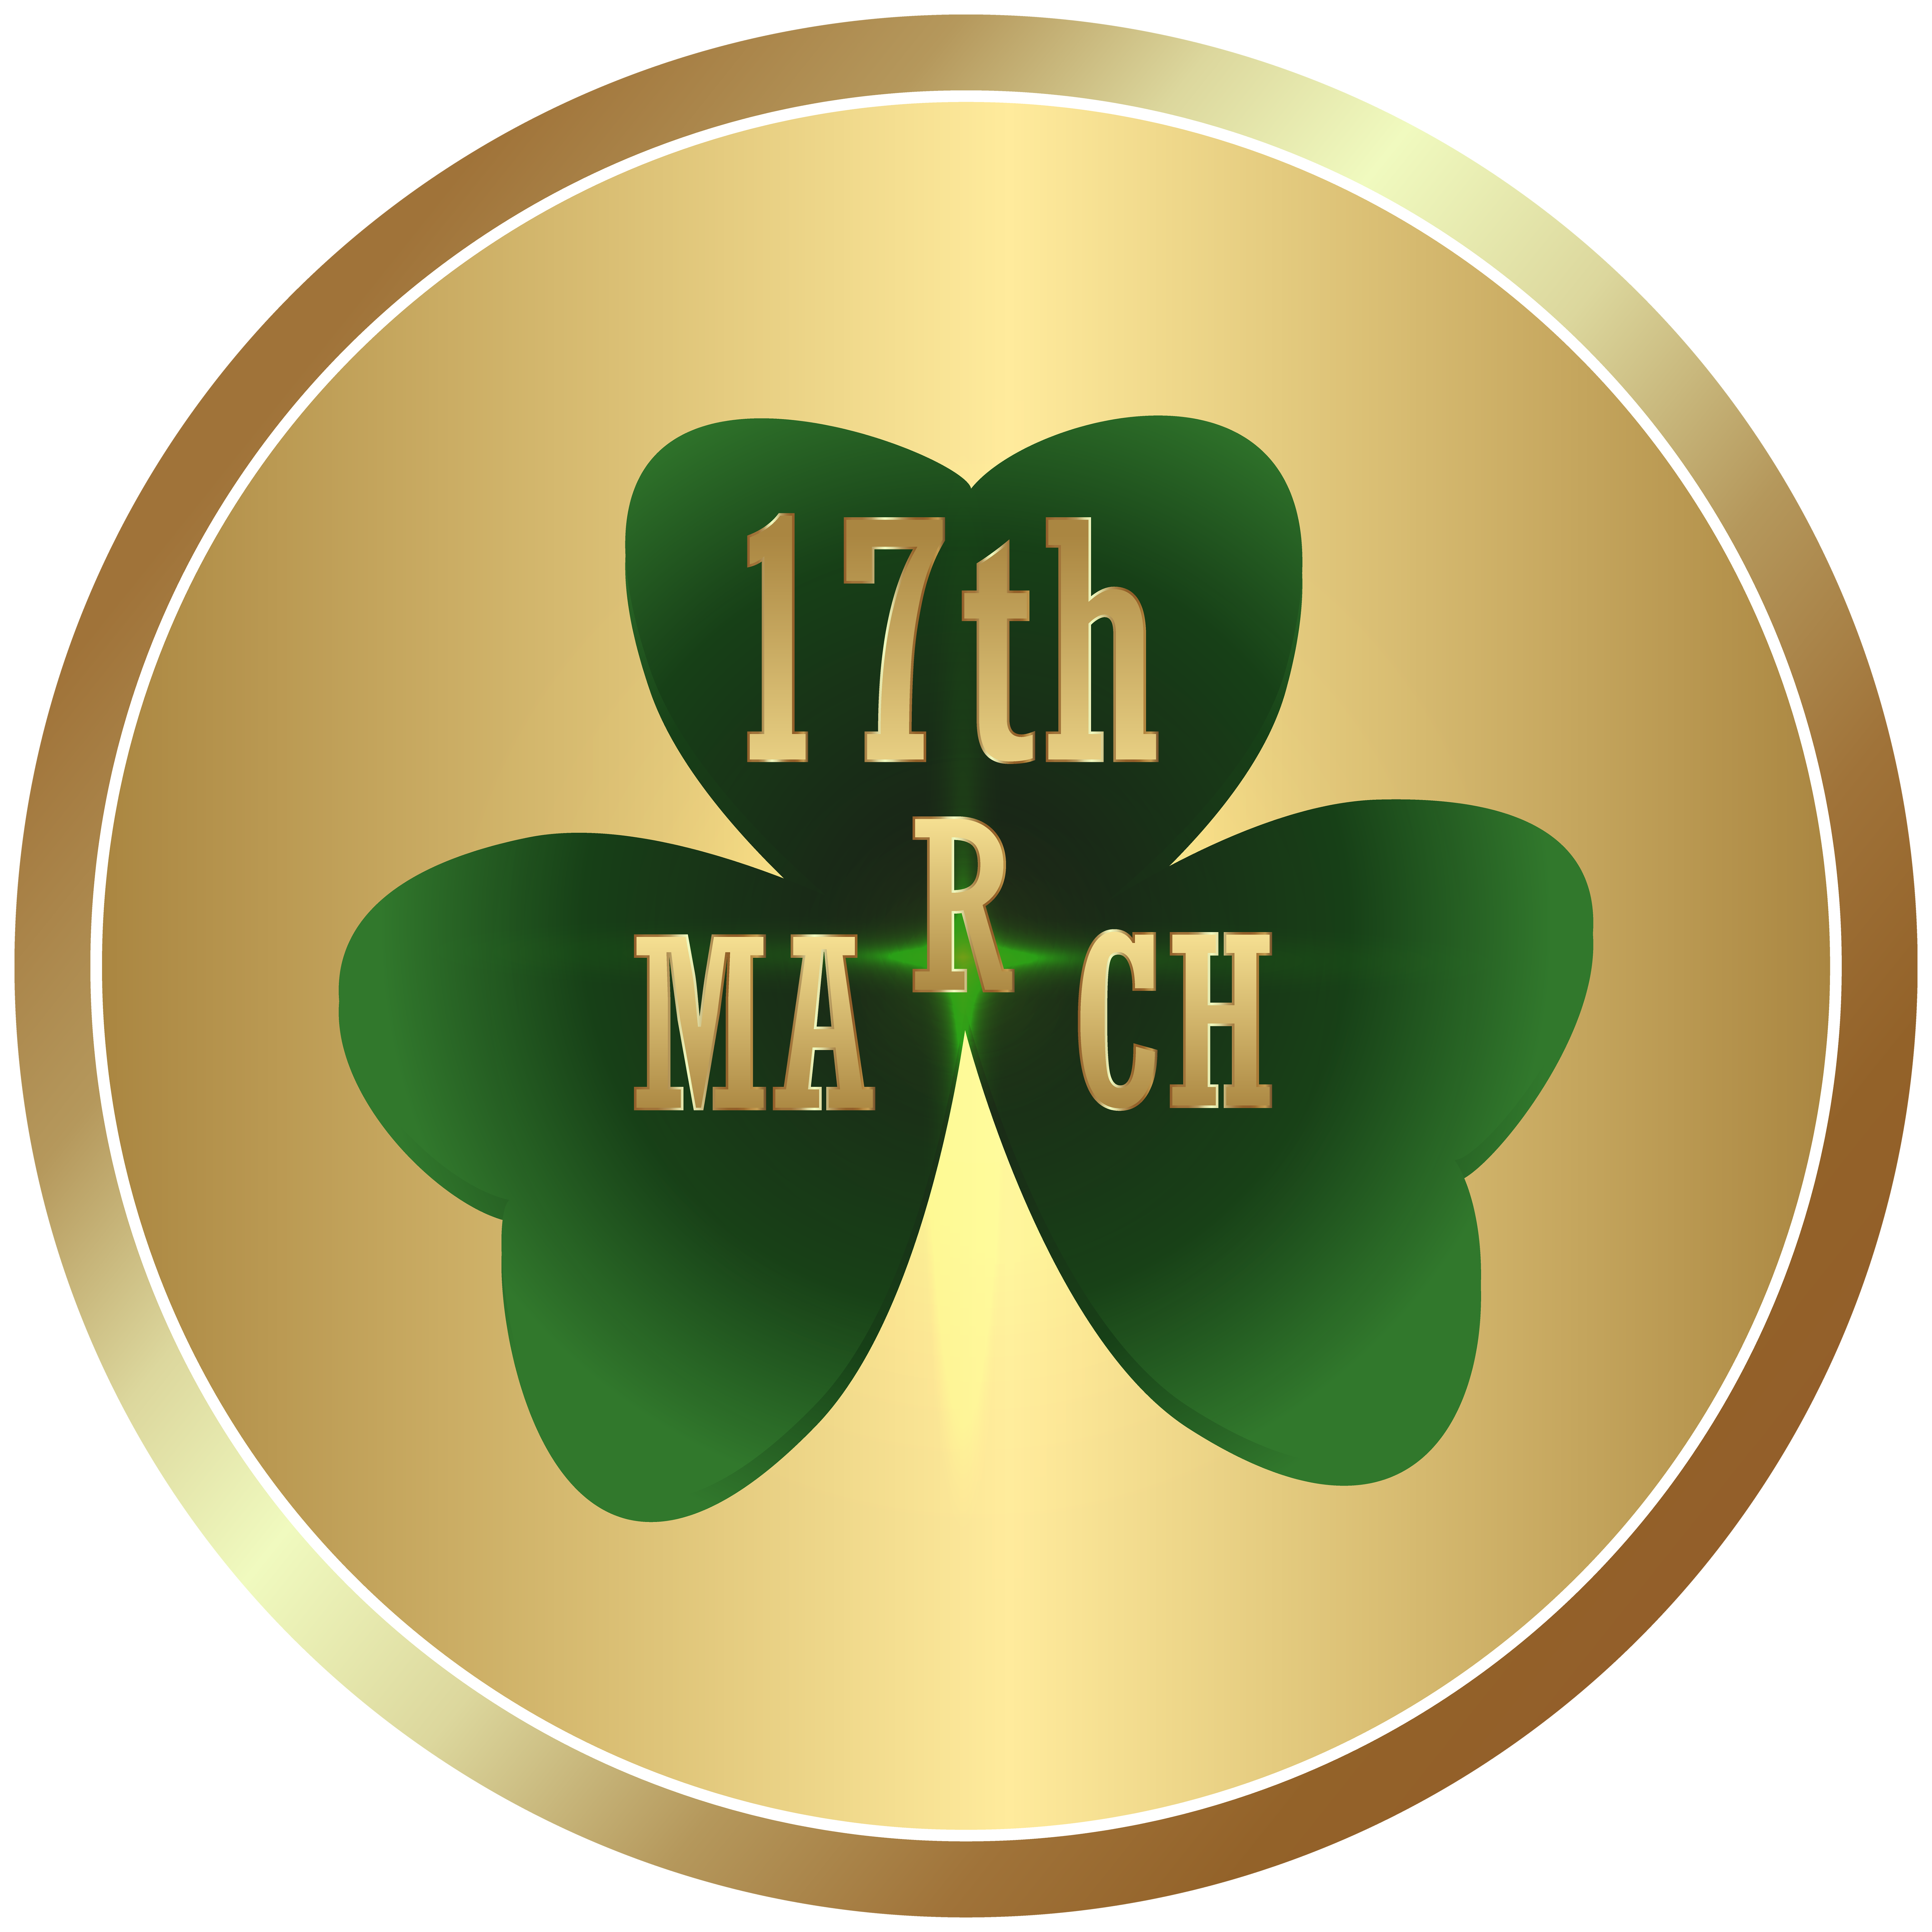 Clover clipart march birthday. St patrick s day